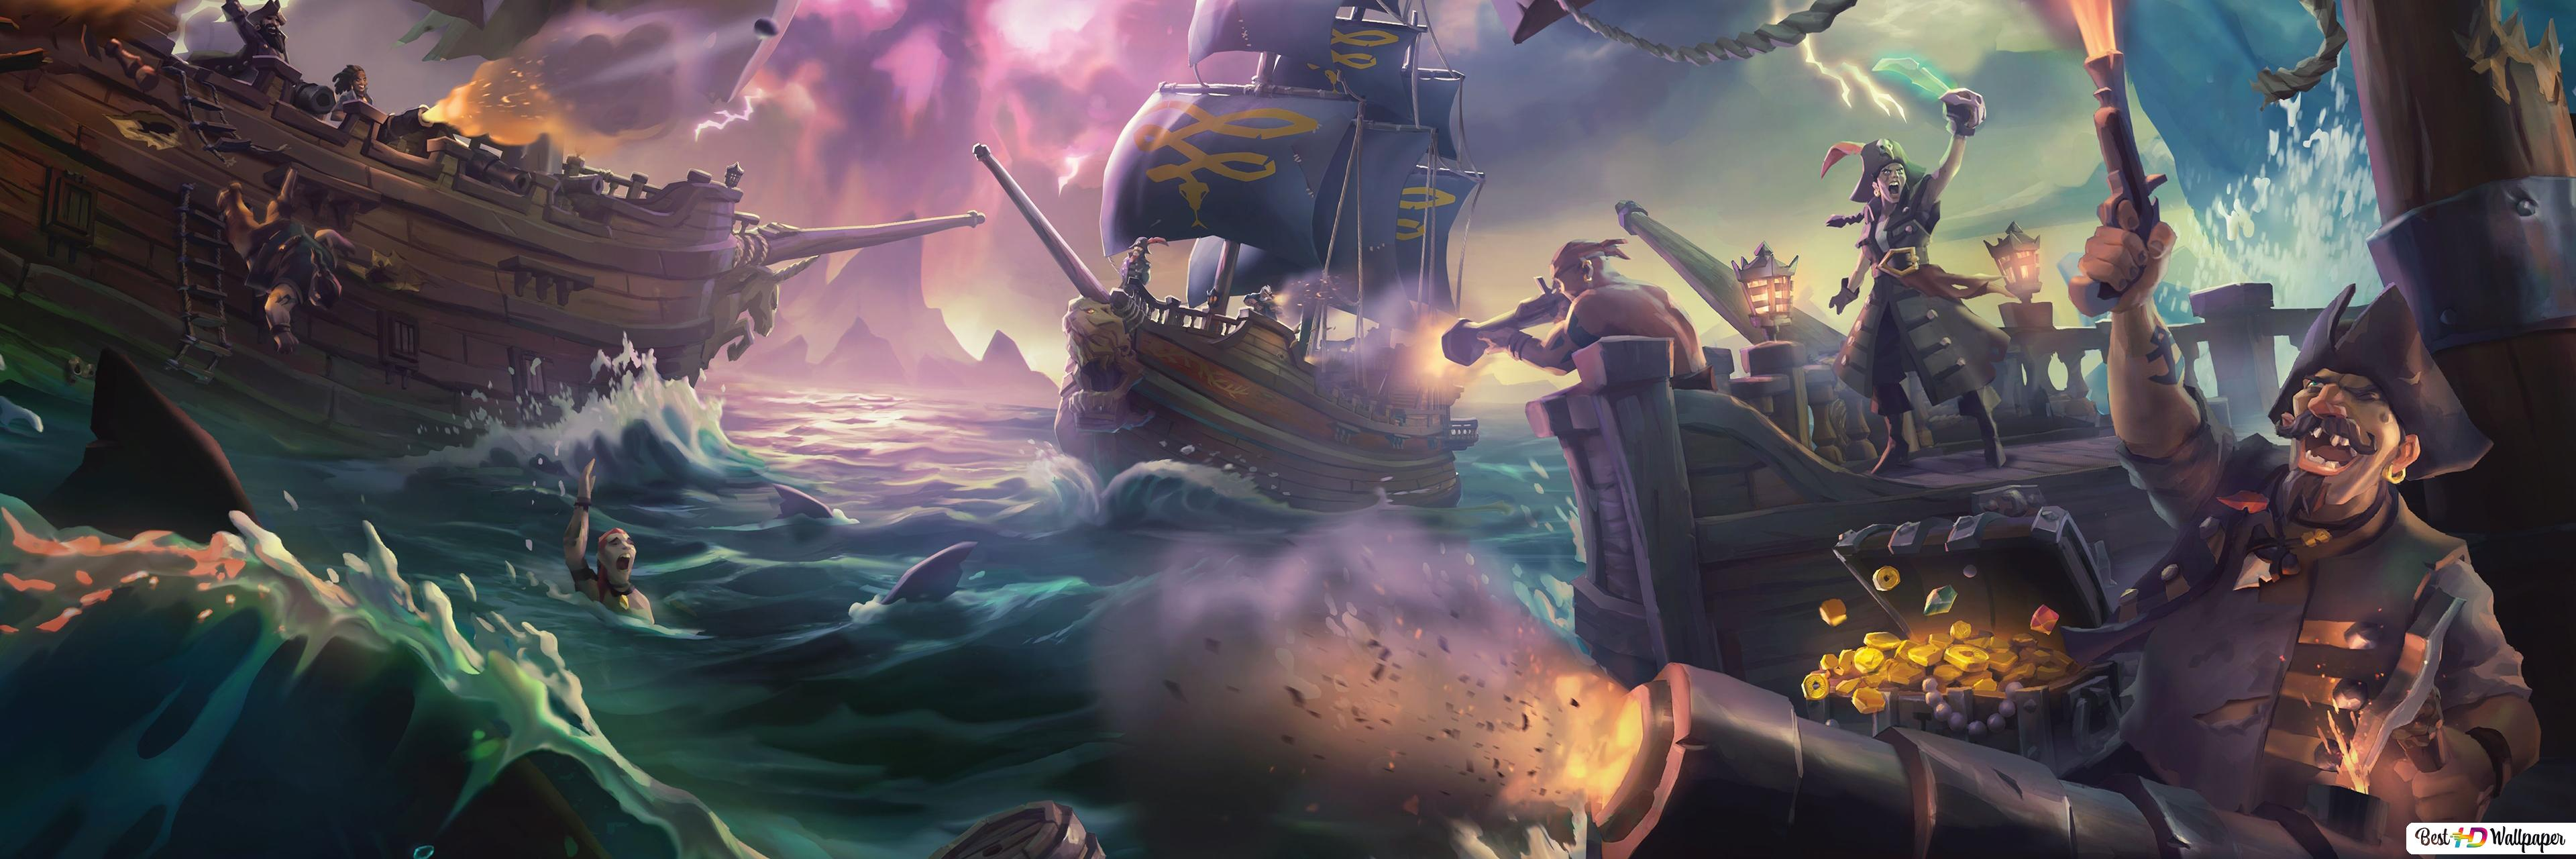 Sea Of Thieves Hd Wallpaper Download